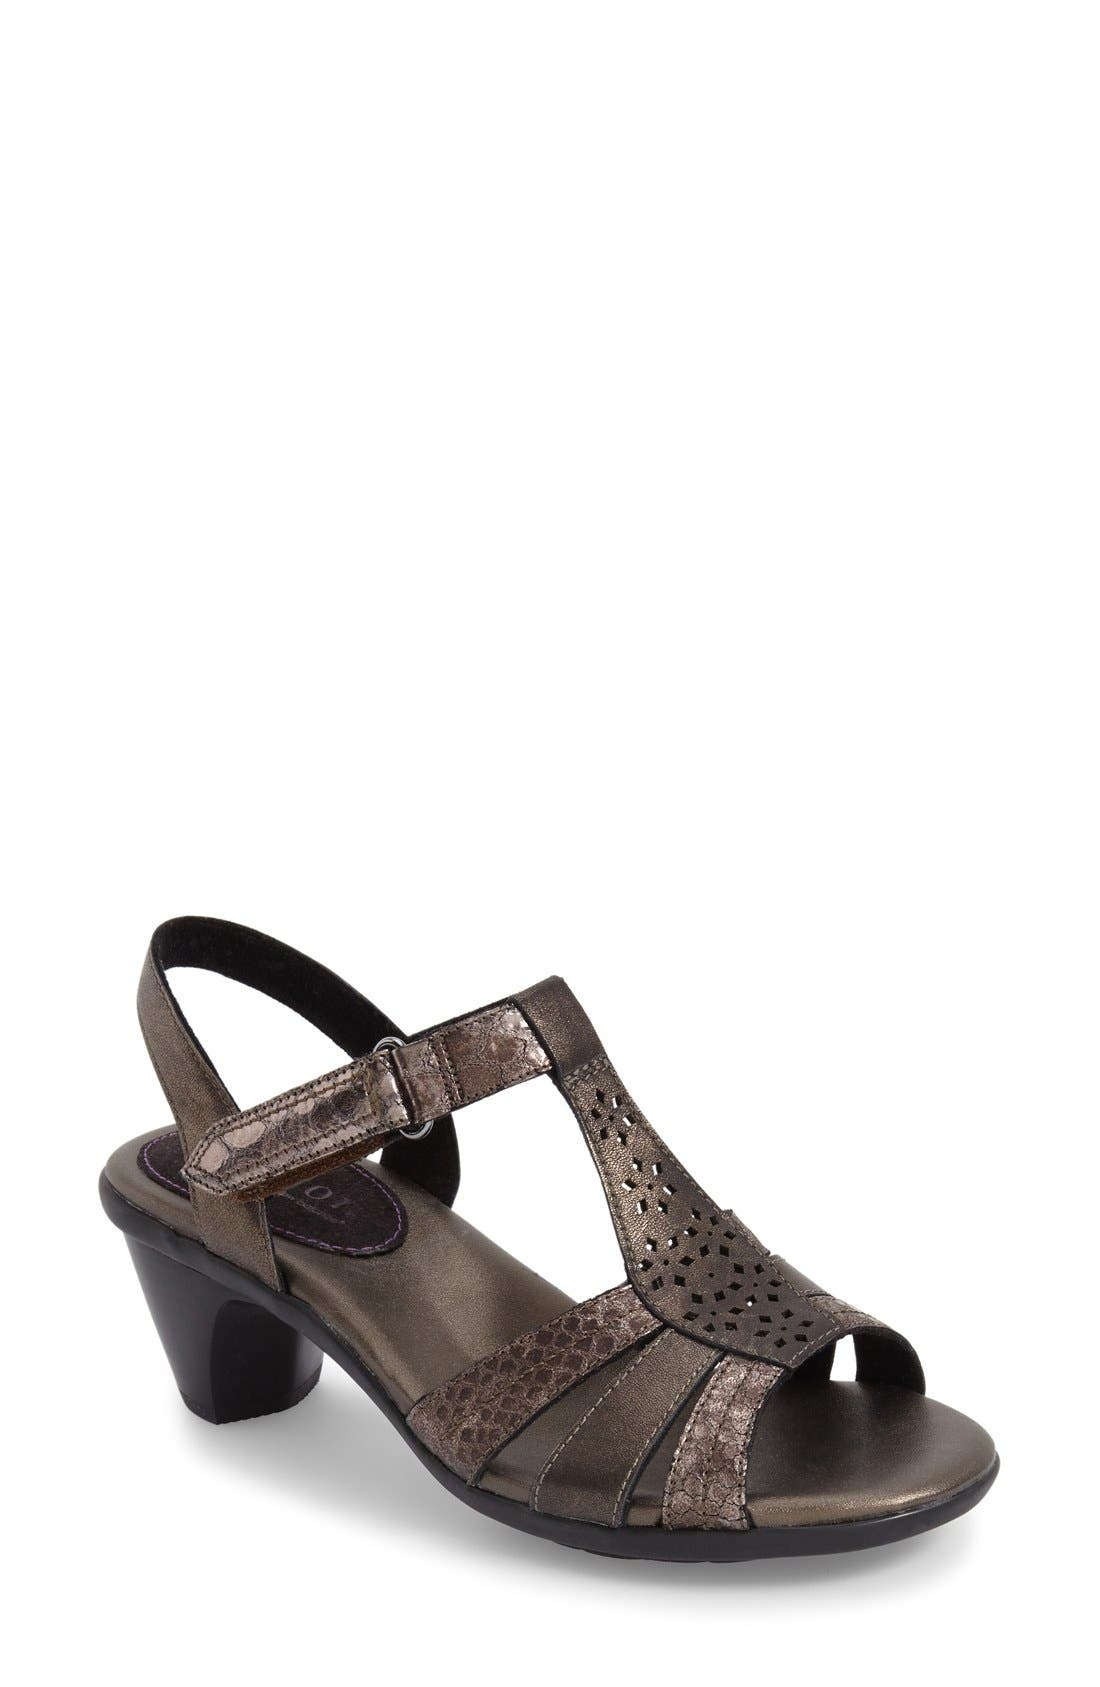 'Mary' T-Strap Sandal,                         Main,                         color, Grey Leather